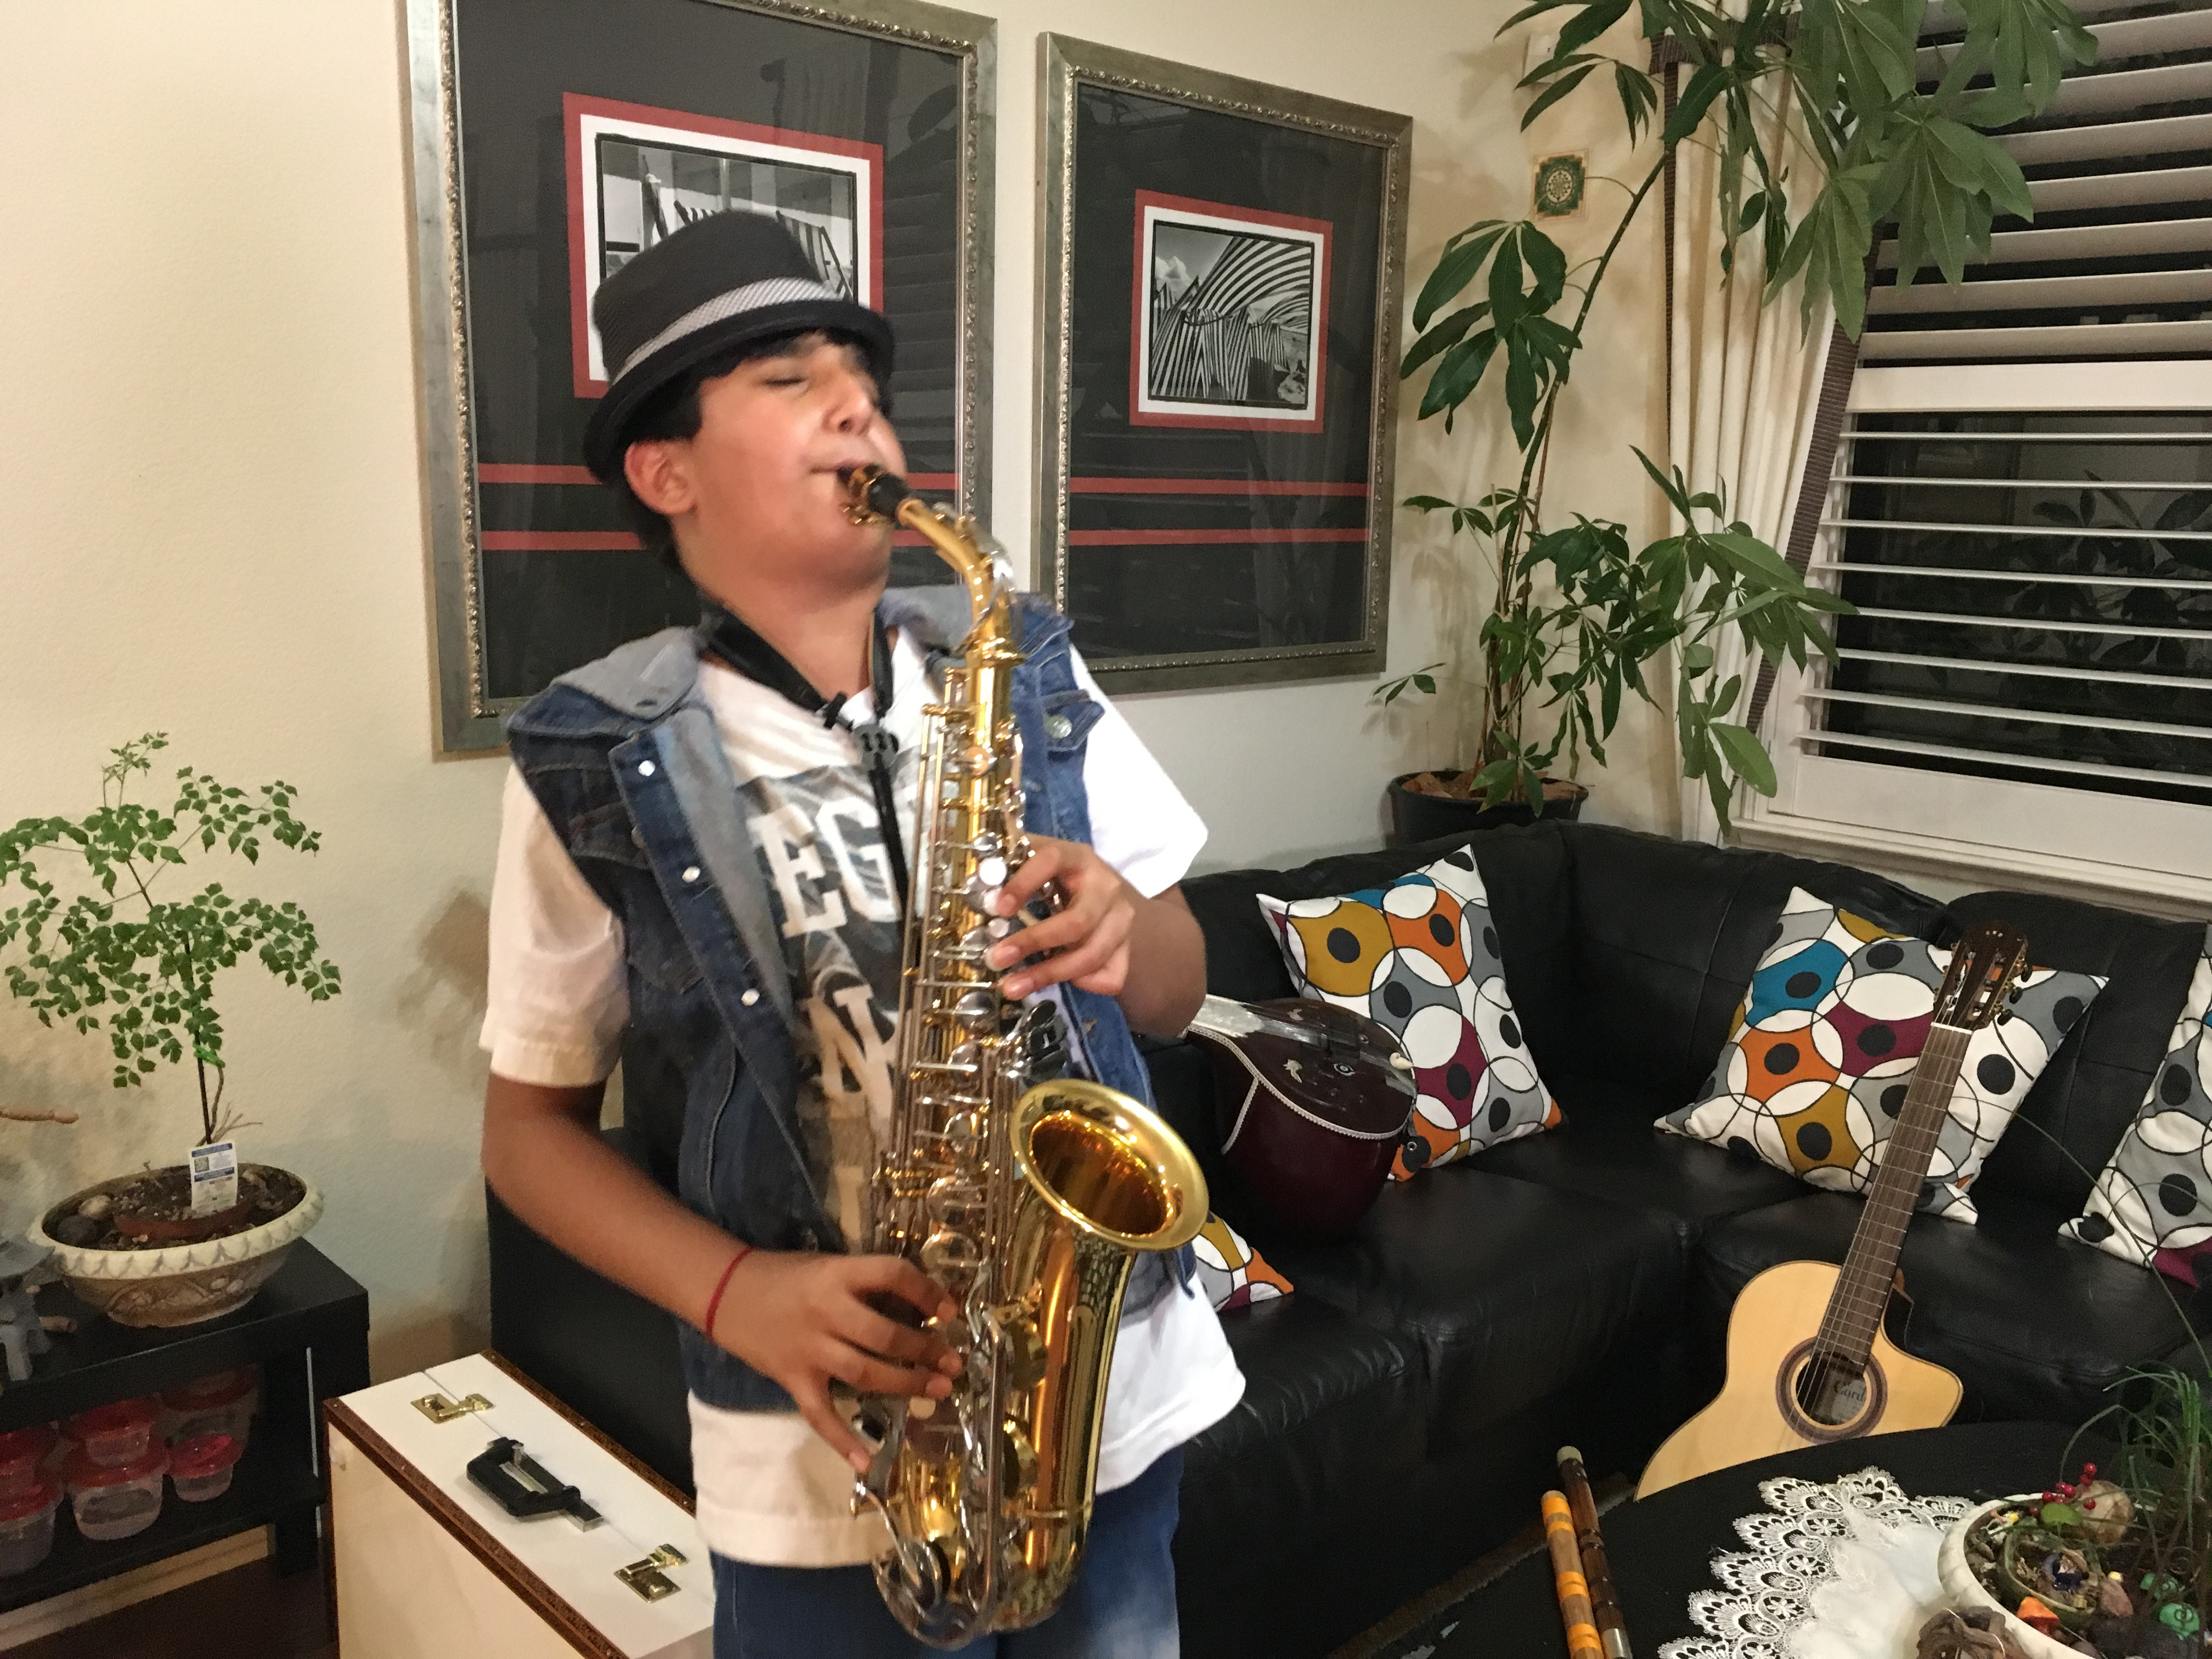 Elk Grove 7th grader believed to be youngest person to play most musical instruments   ABC10.com